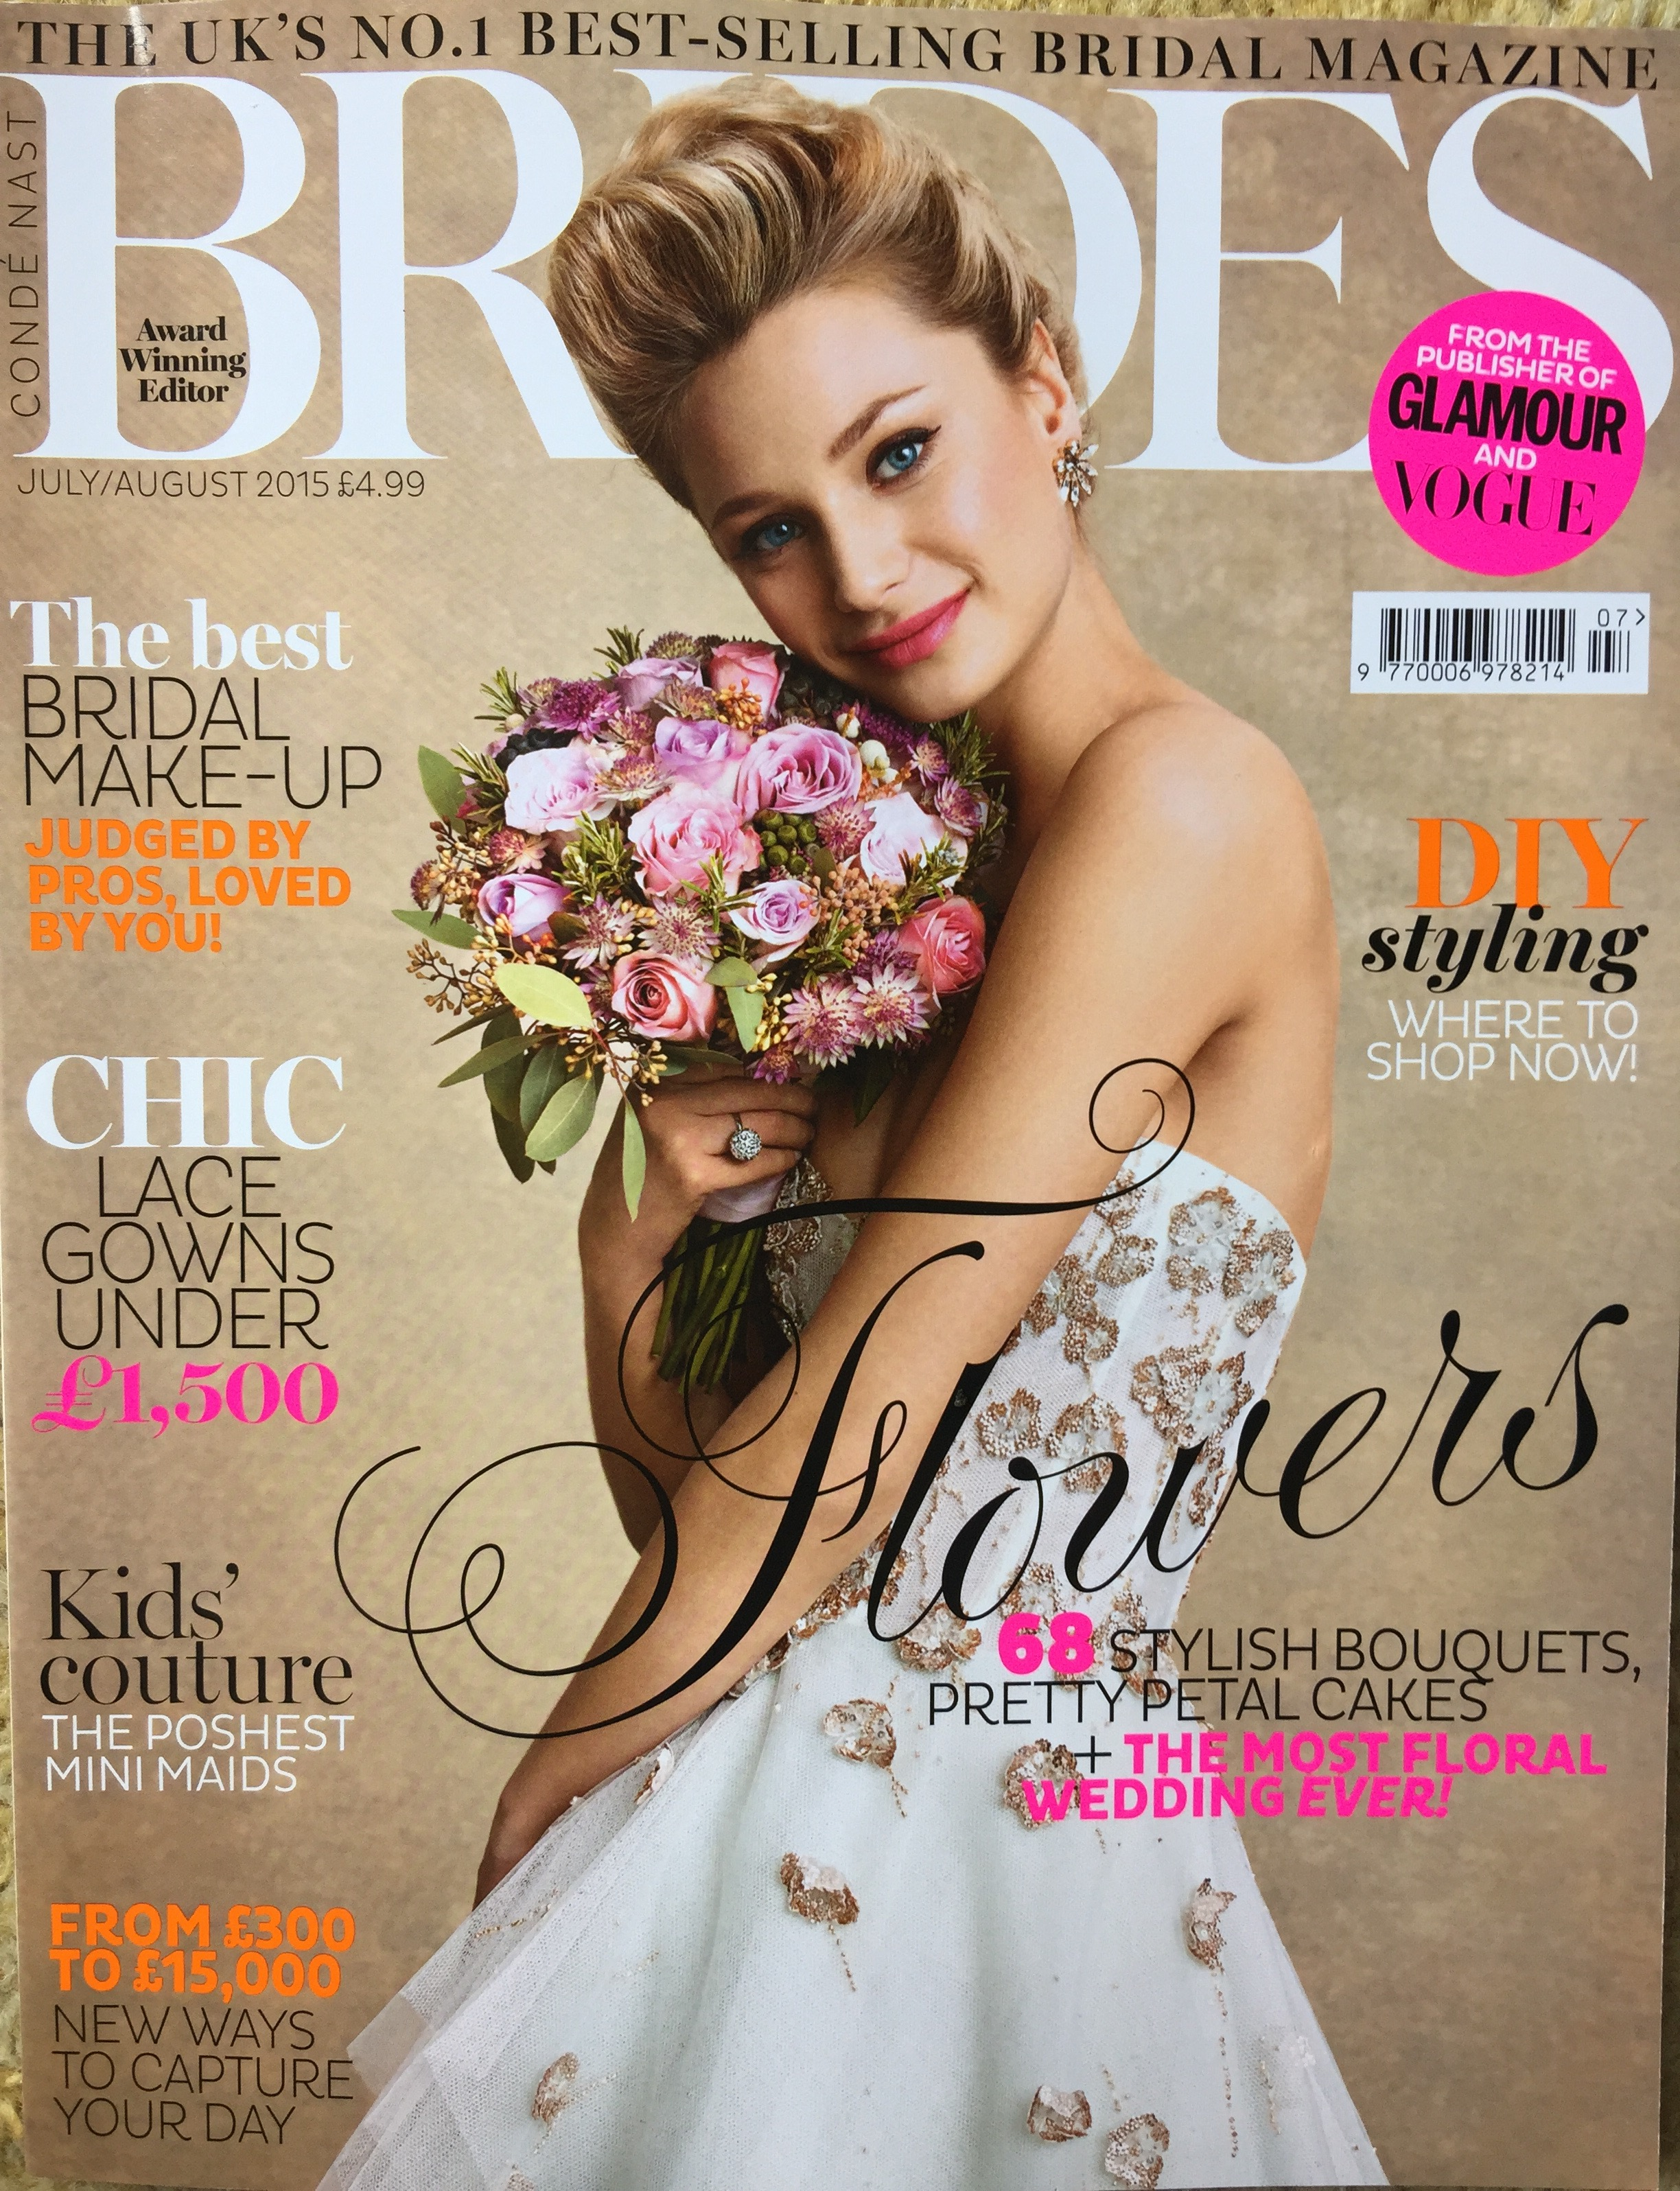 BRIDES Magazine July/August 2015